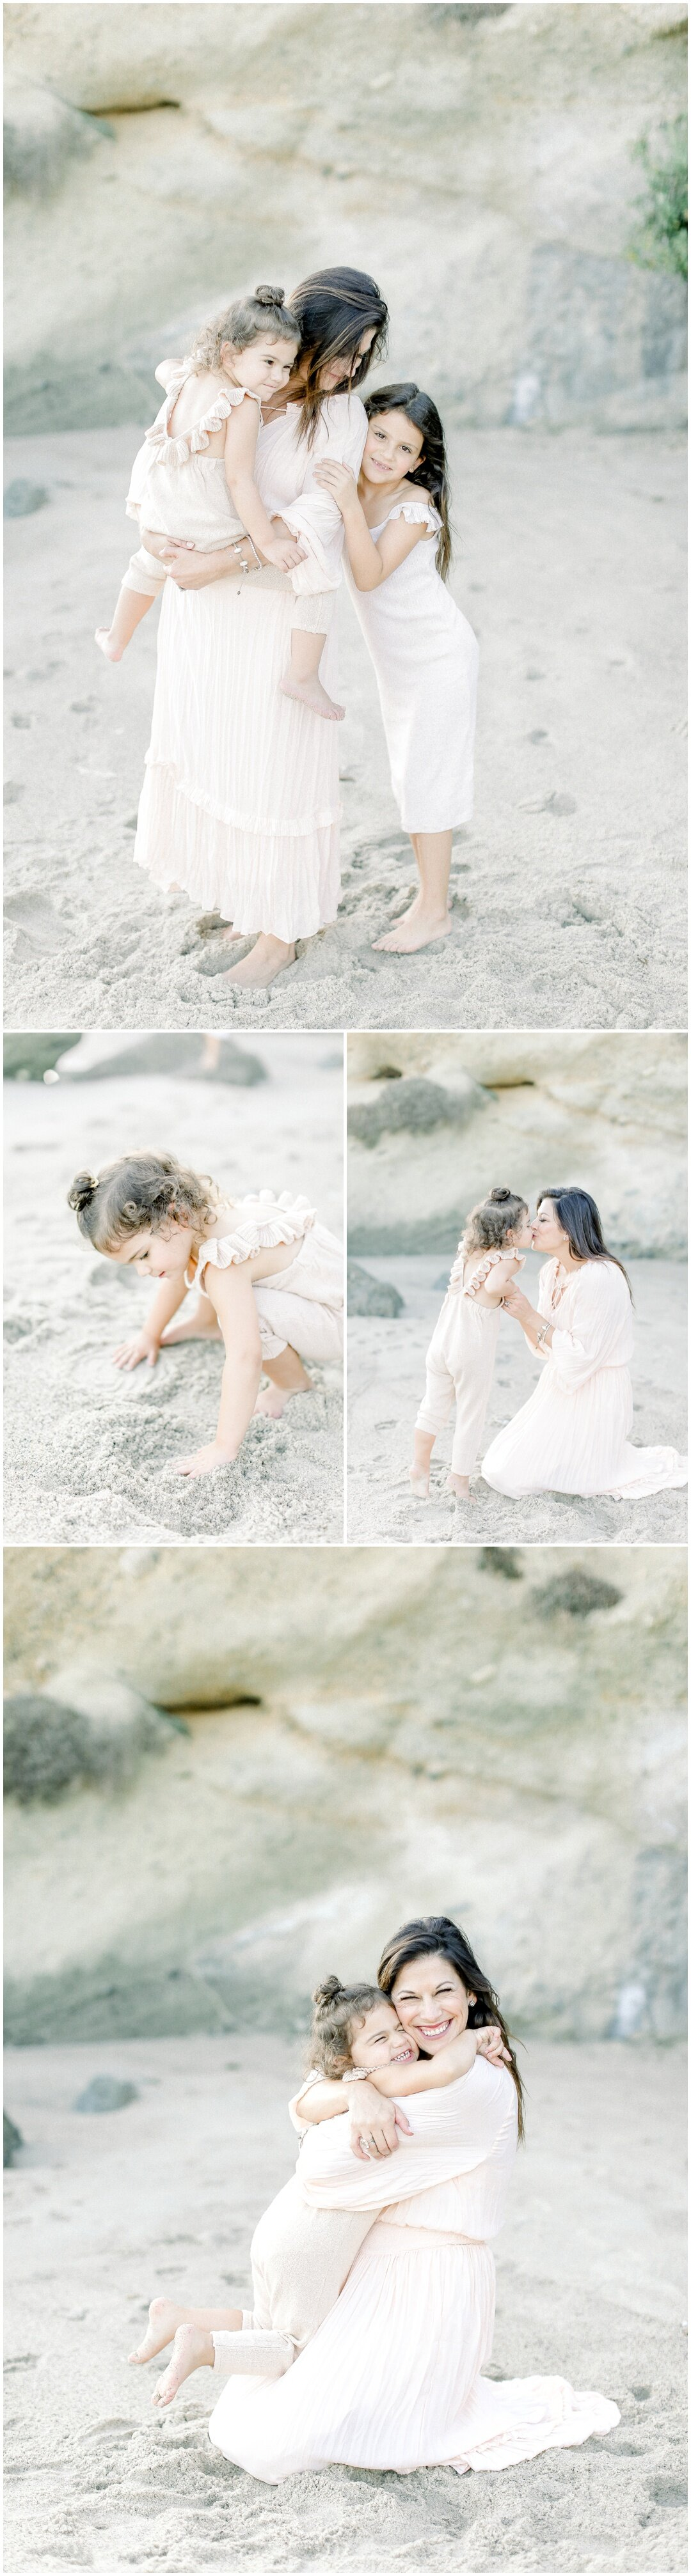 Newport+Beach+Newborn+Maternity+Photographer+Orange+County+Family+Photographer+Cori+Kleckner+Photography+Natalie+Hay+Loretz+Robert+Hay+The+Hay+Family_4440.jpg